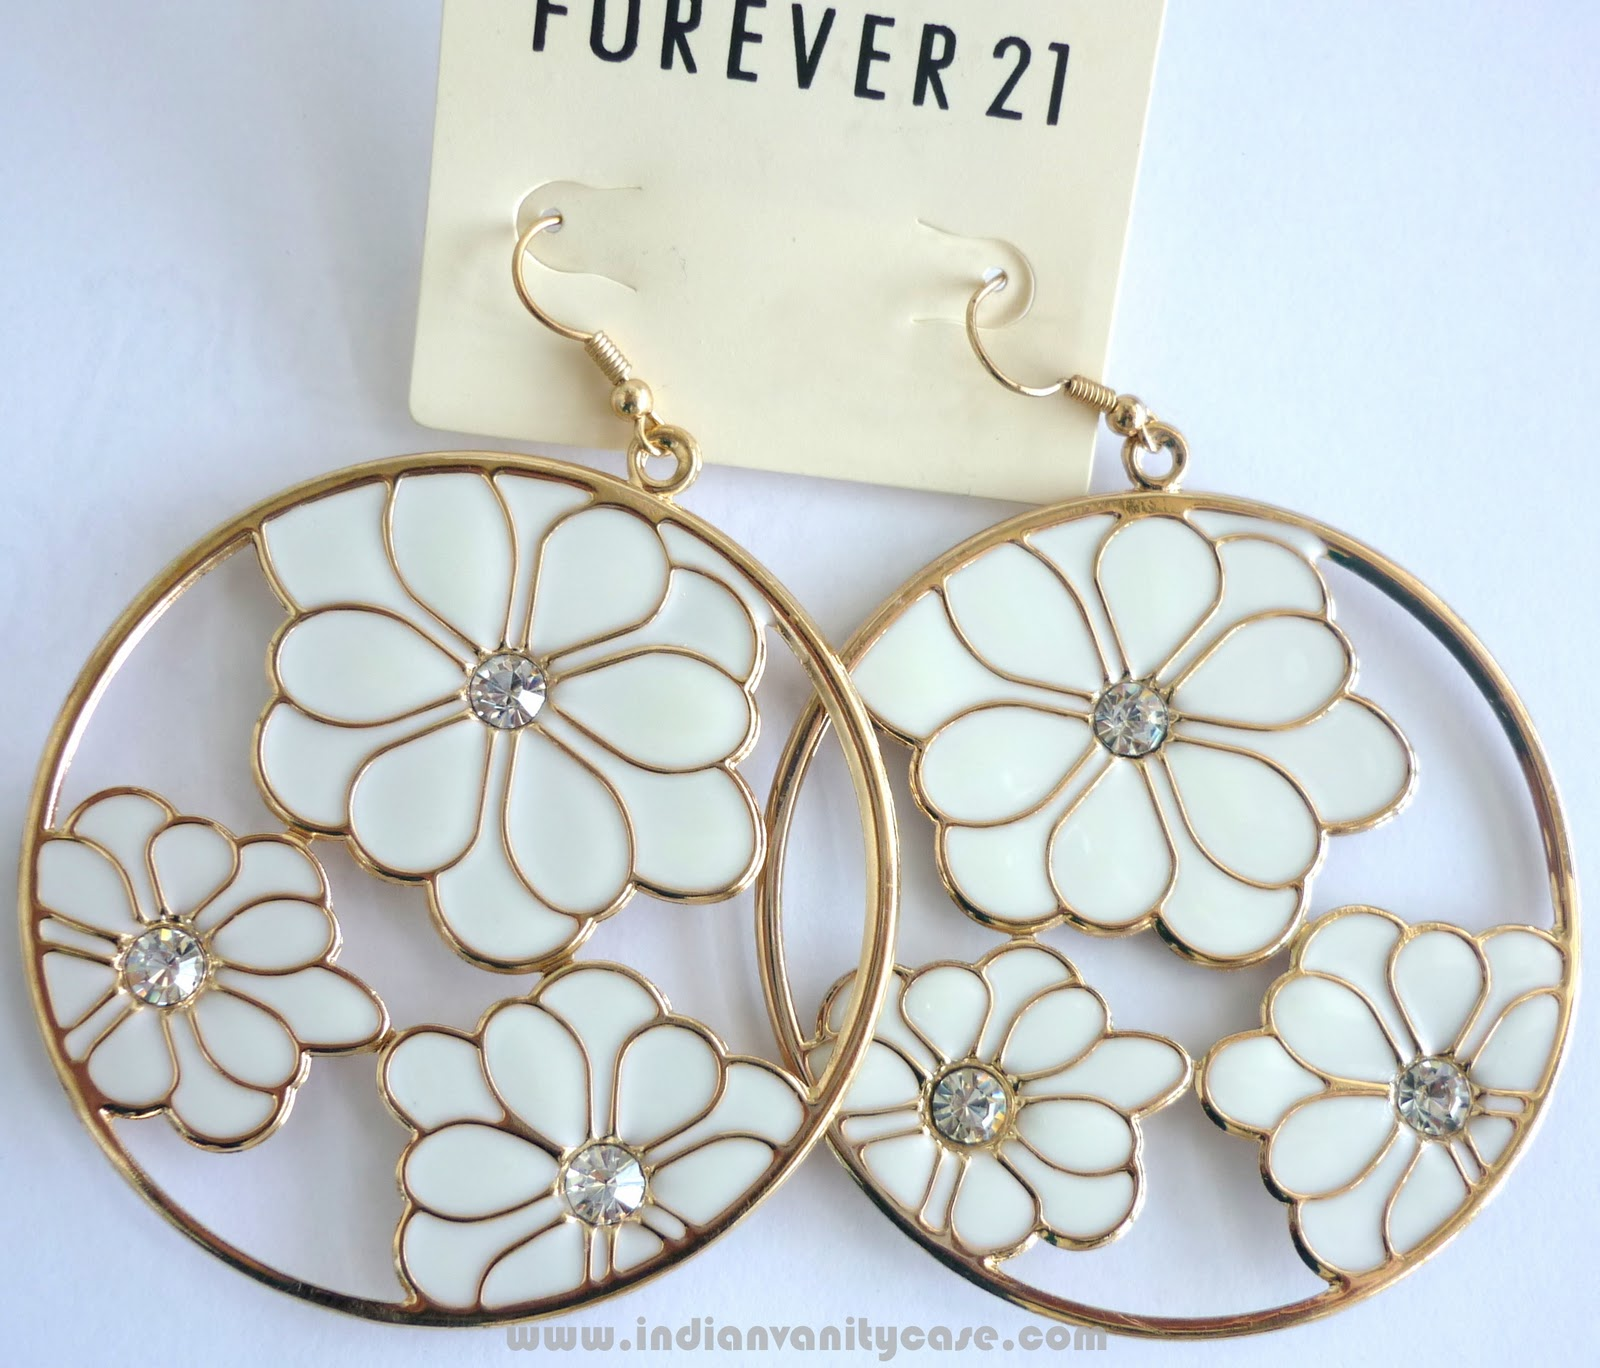 Indian vanity case the carrie diaries f21 earrings for Forever 21 jewelry earrings